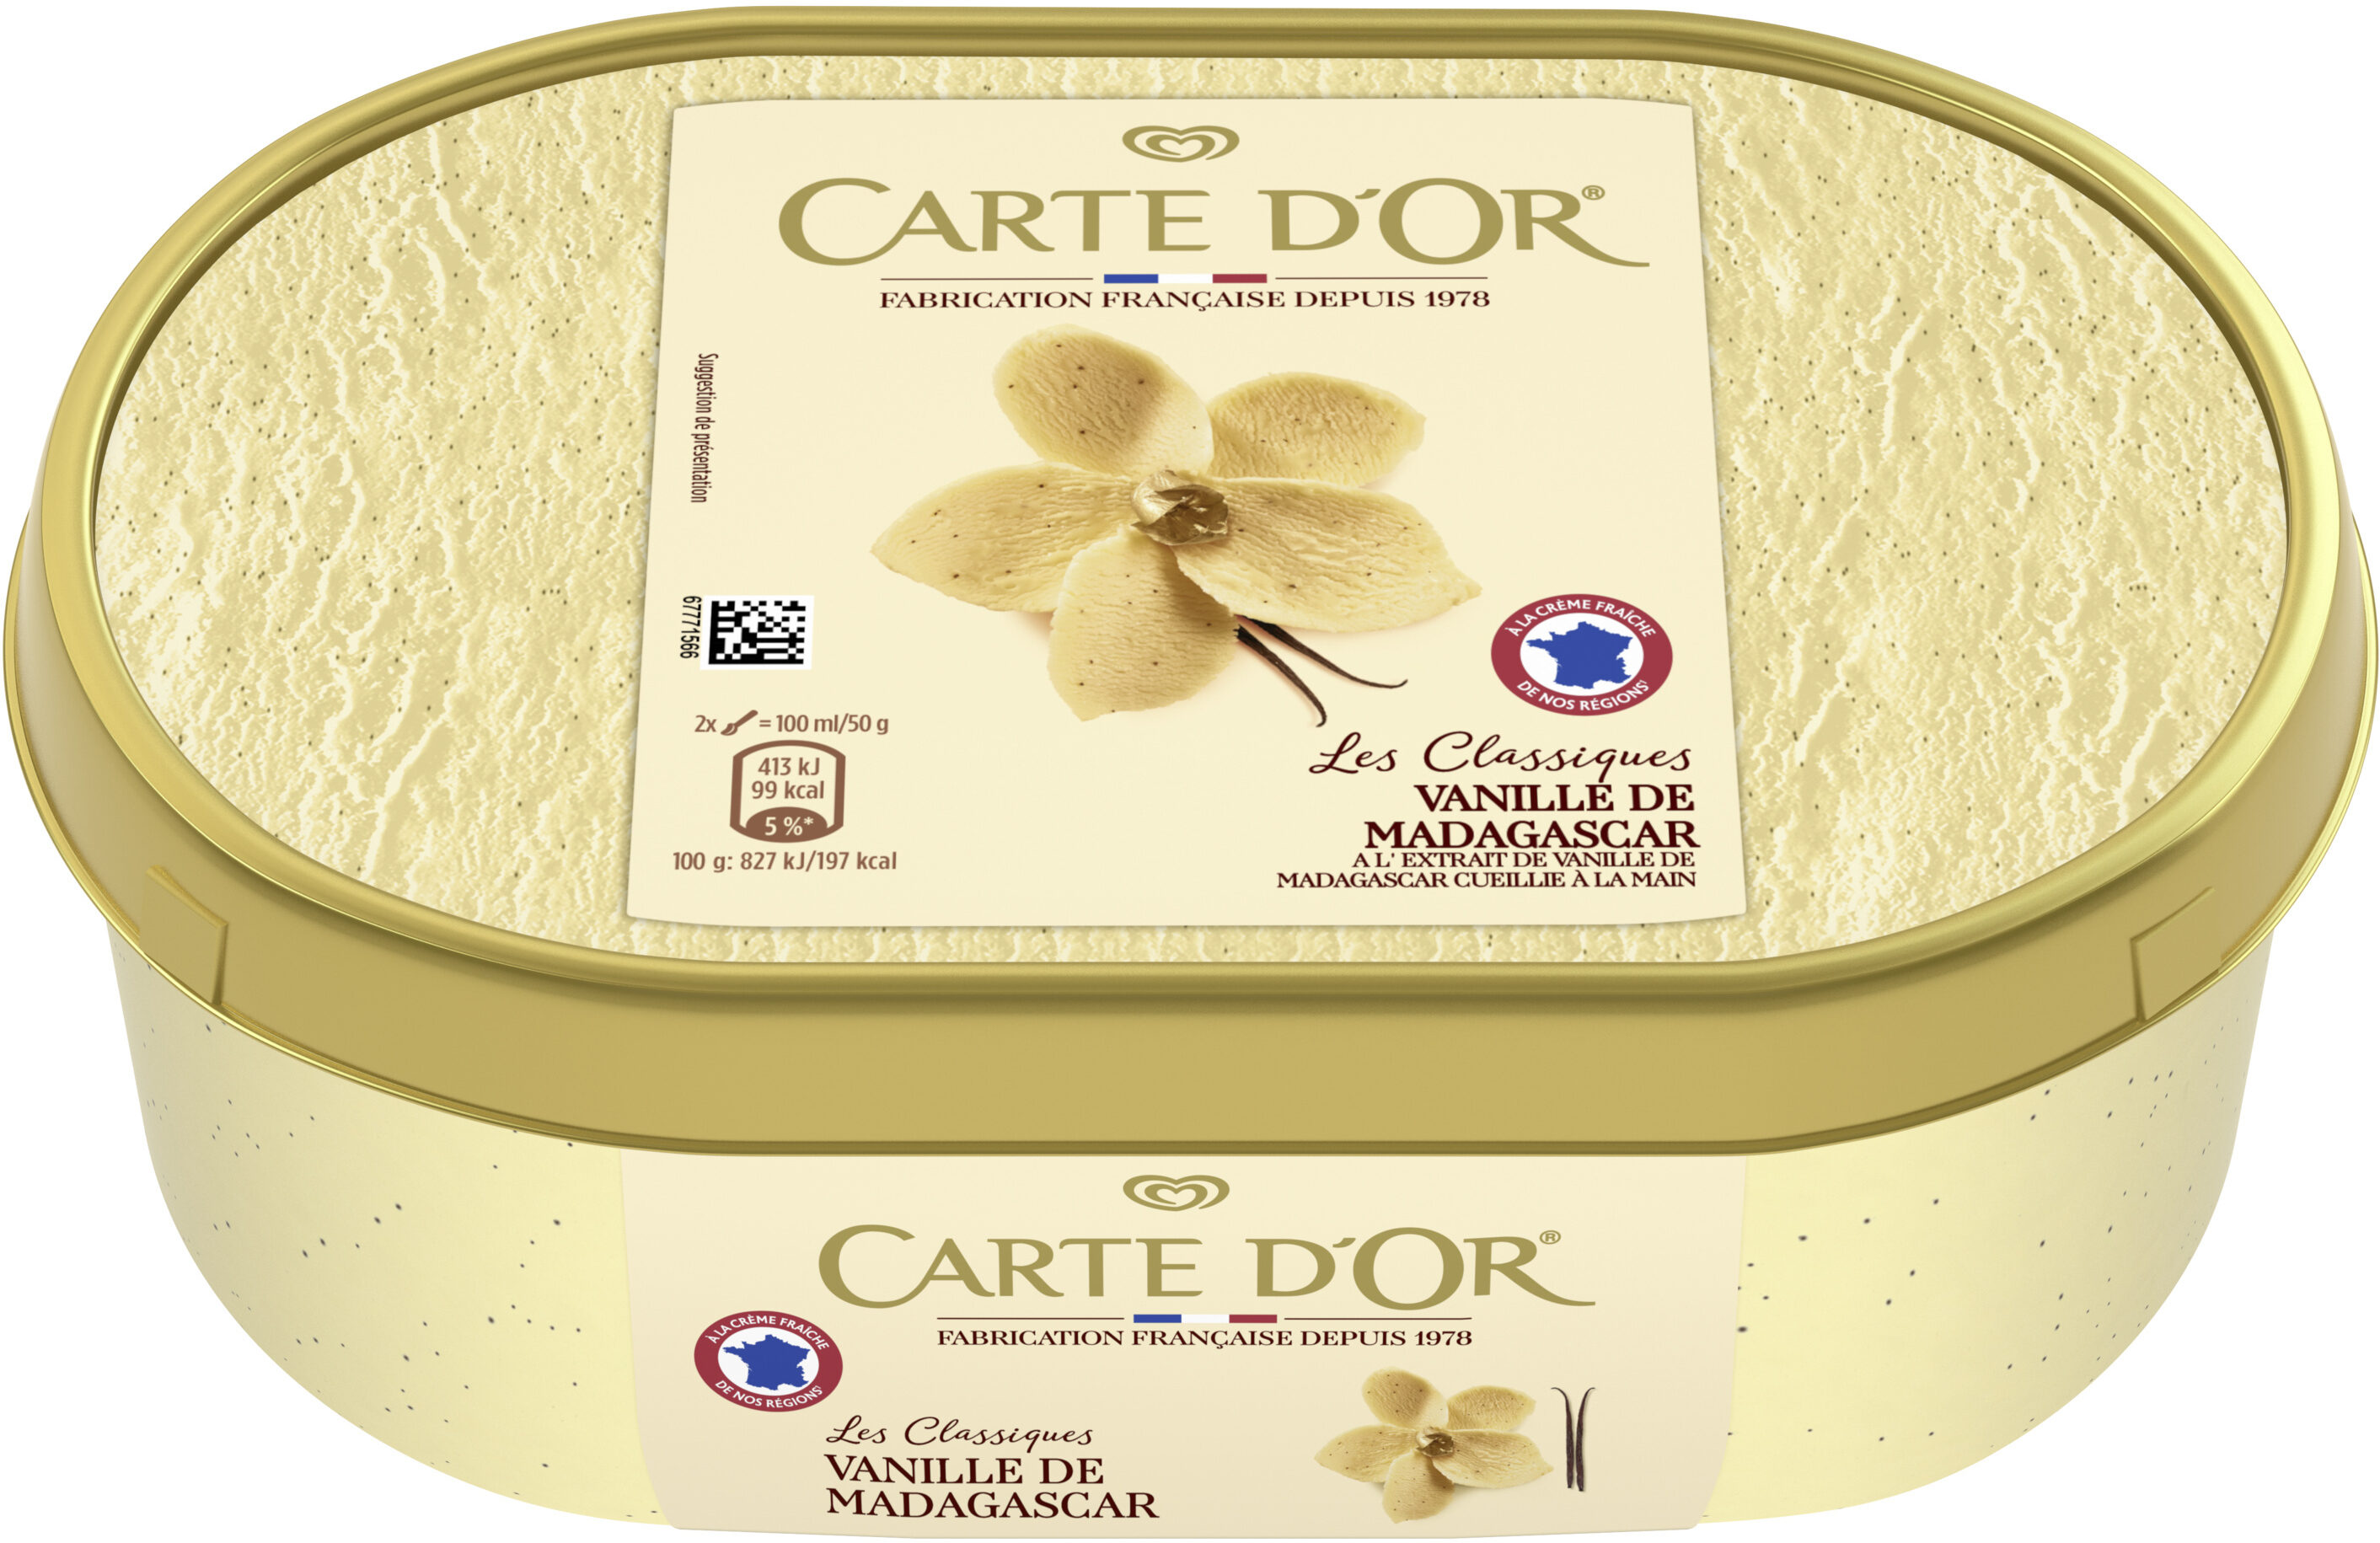 Carte D'or Les Authentiques Glace Vanille de Madagascar Bac - Prodotto - fr